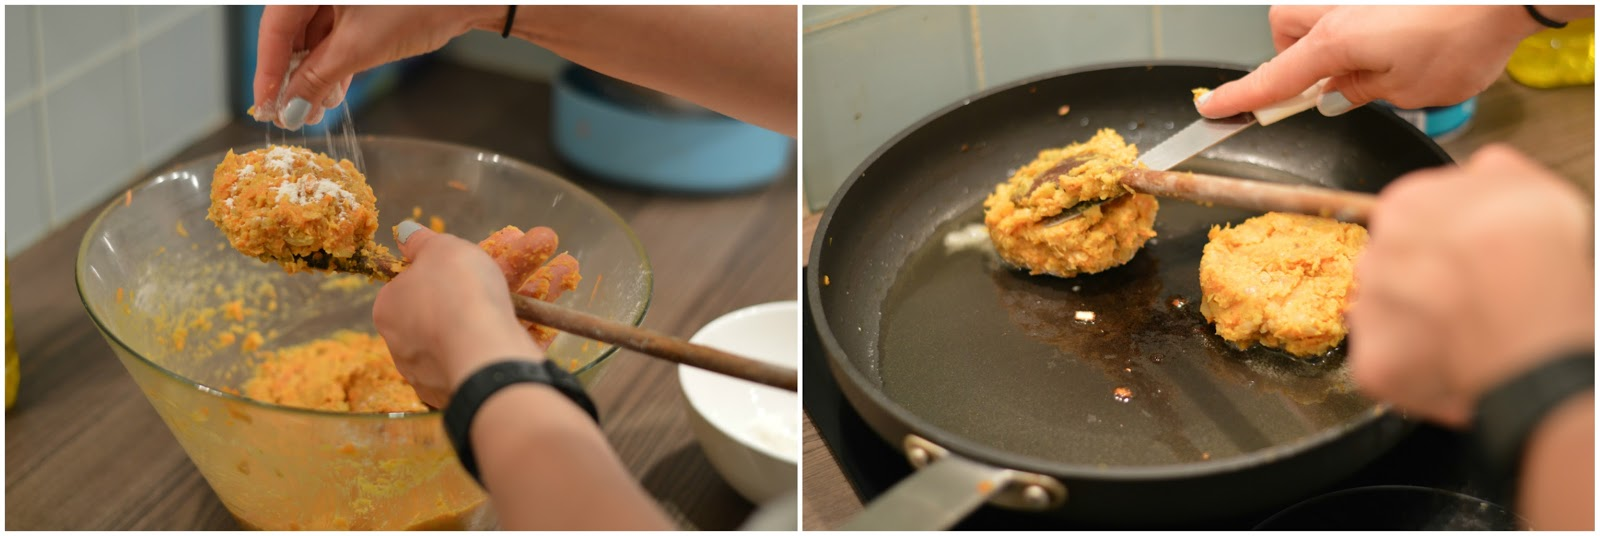 Making and frying sweet potato and chickpea cakes burgers patties vegetarian recipe